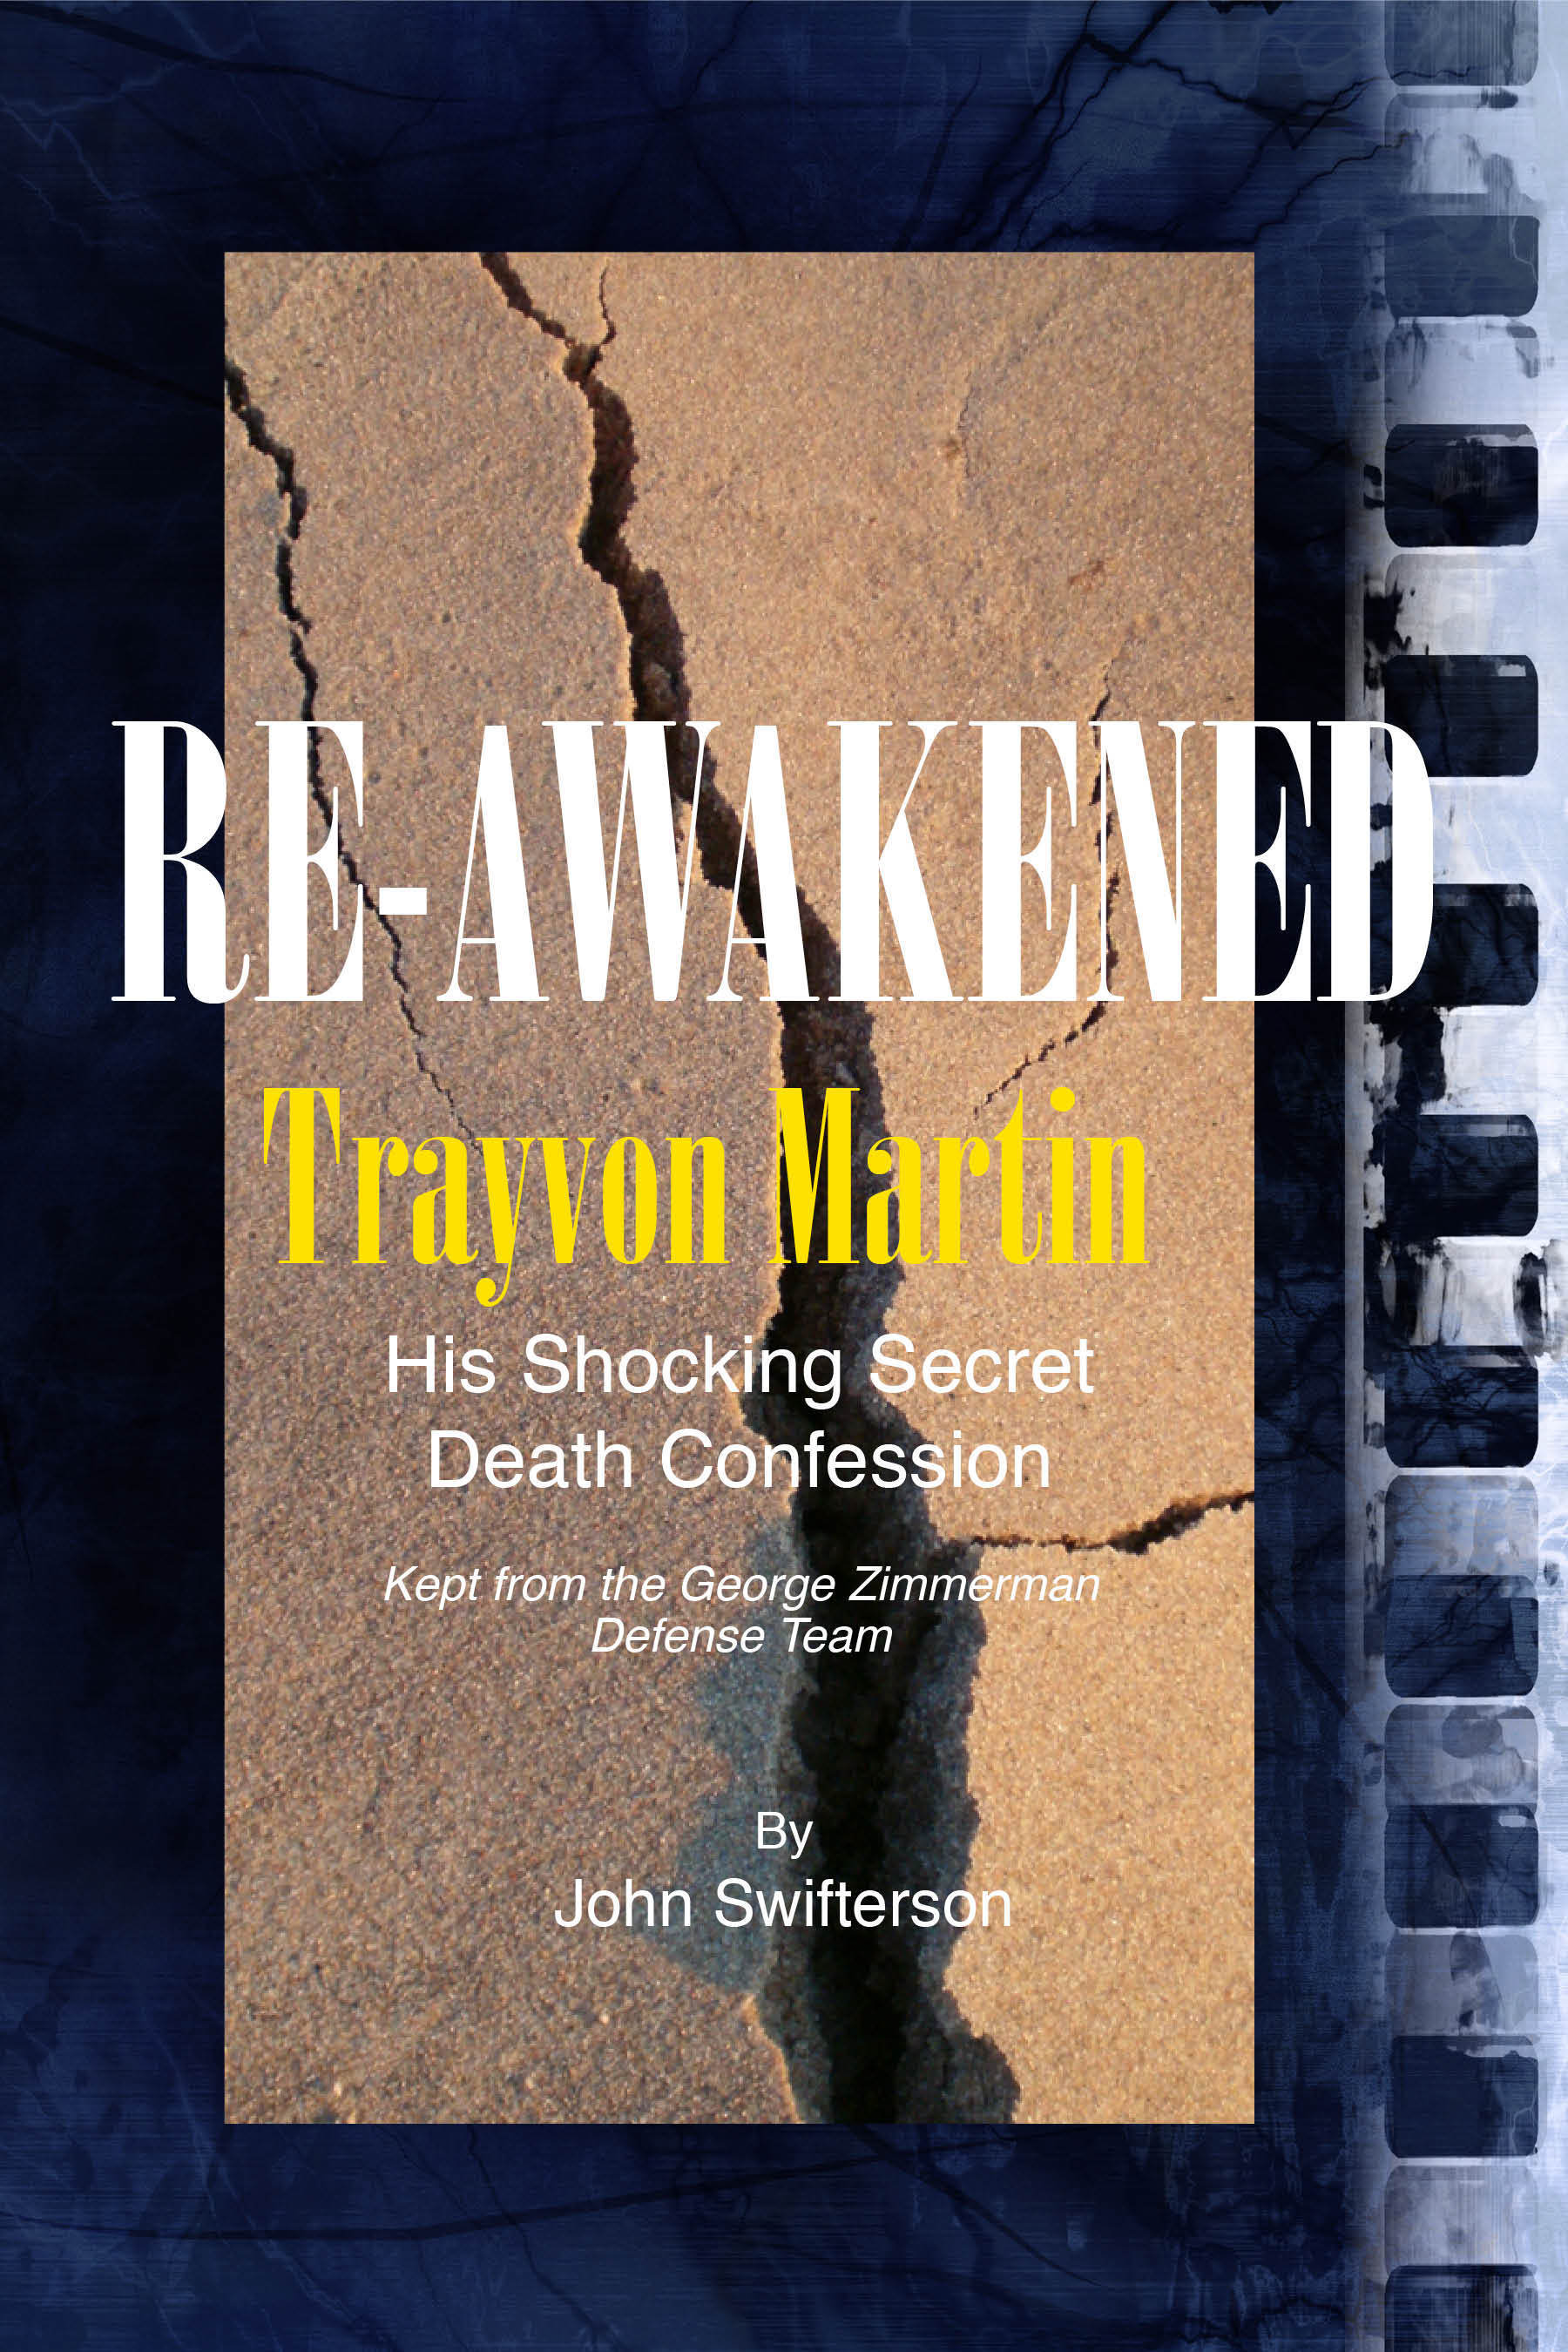 Reawakened Trayvon Martin His Shocking Secret Death Confession Kept from the George Zimmerman Defense  by  John Swifterson